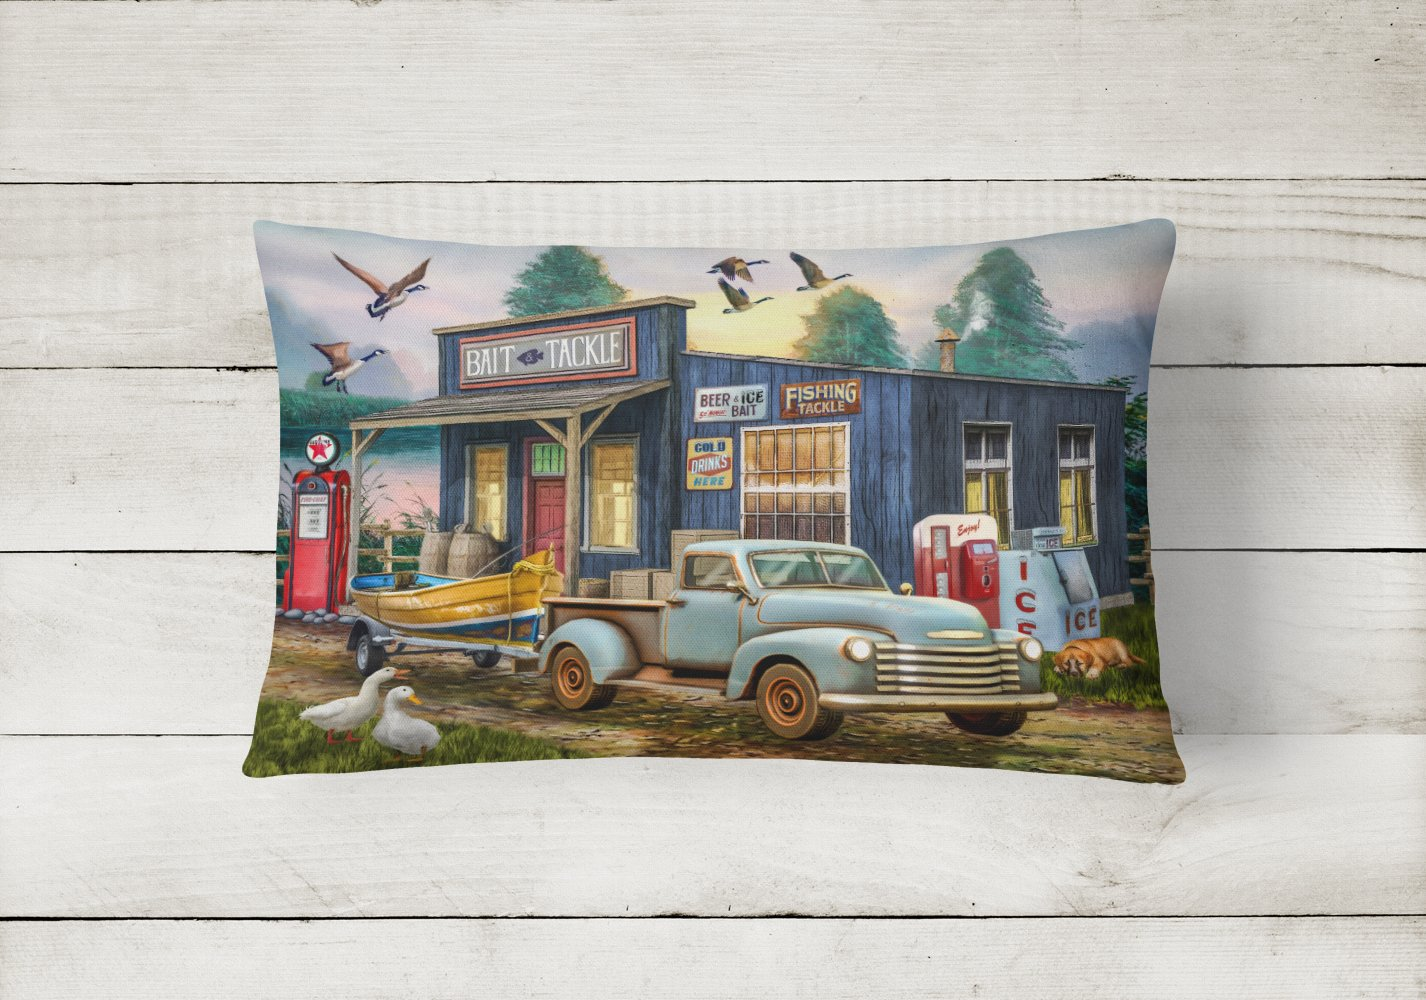 Early Bird Catches the Fish Bait Shop Canvas Fabric Decorative Pillow PTW2065PW1216 by Caroline's Treasures